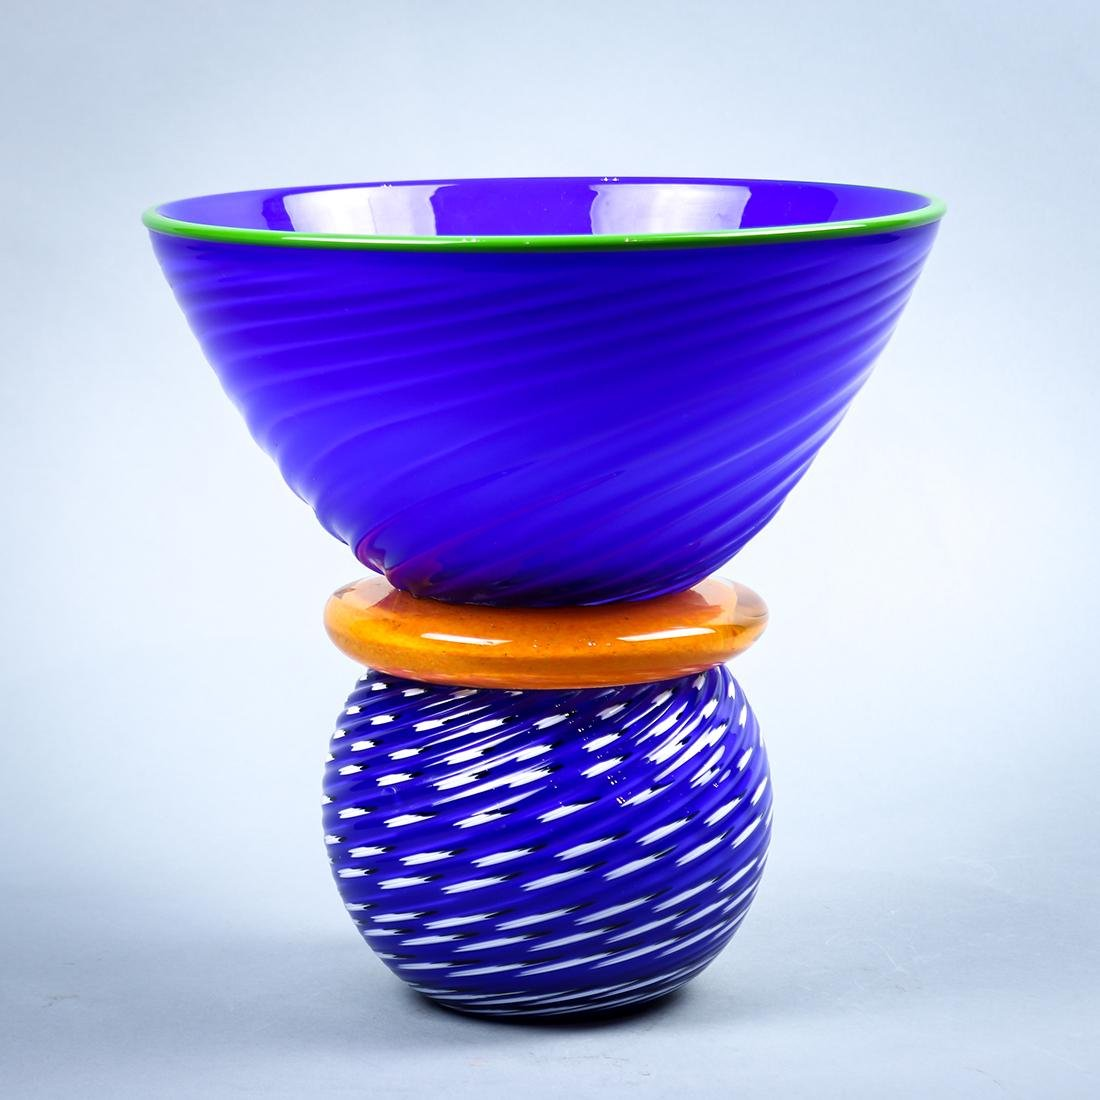 Gordon Pizzichillo art glass vase